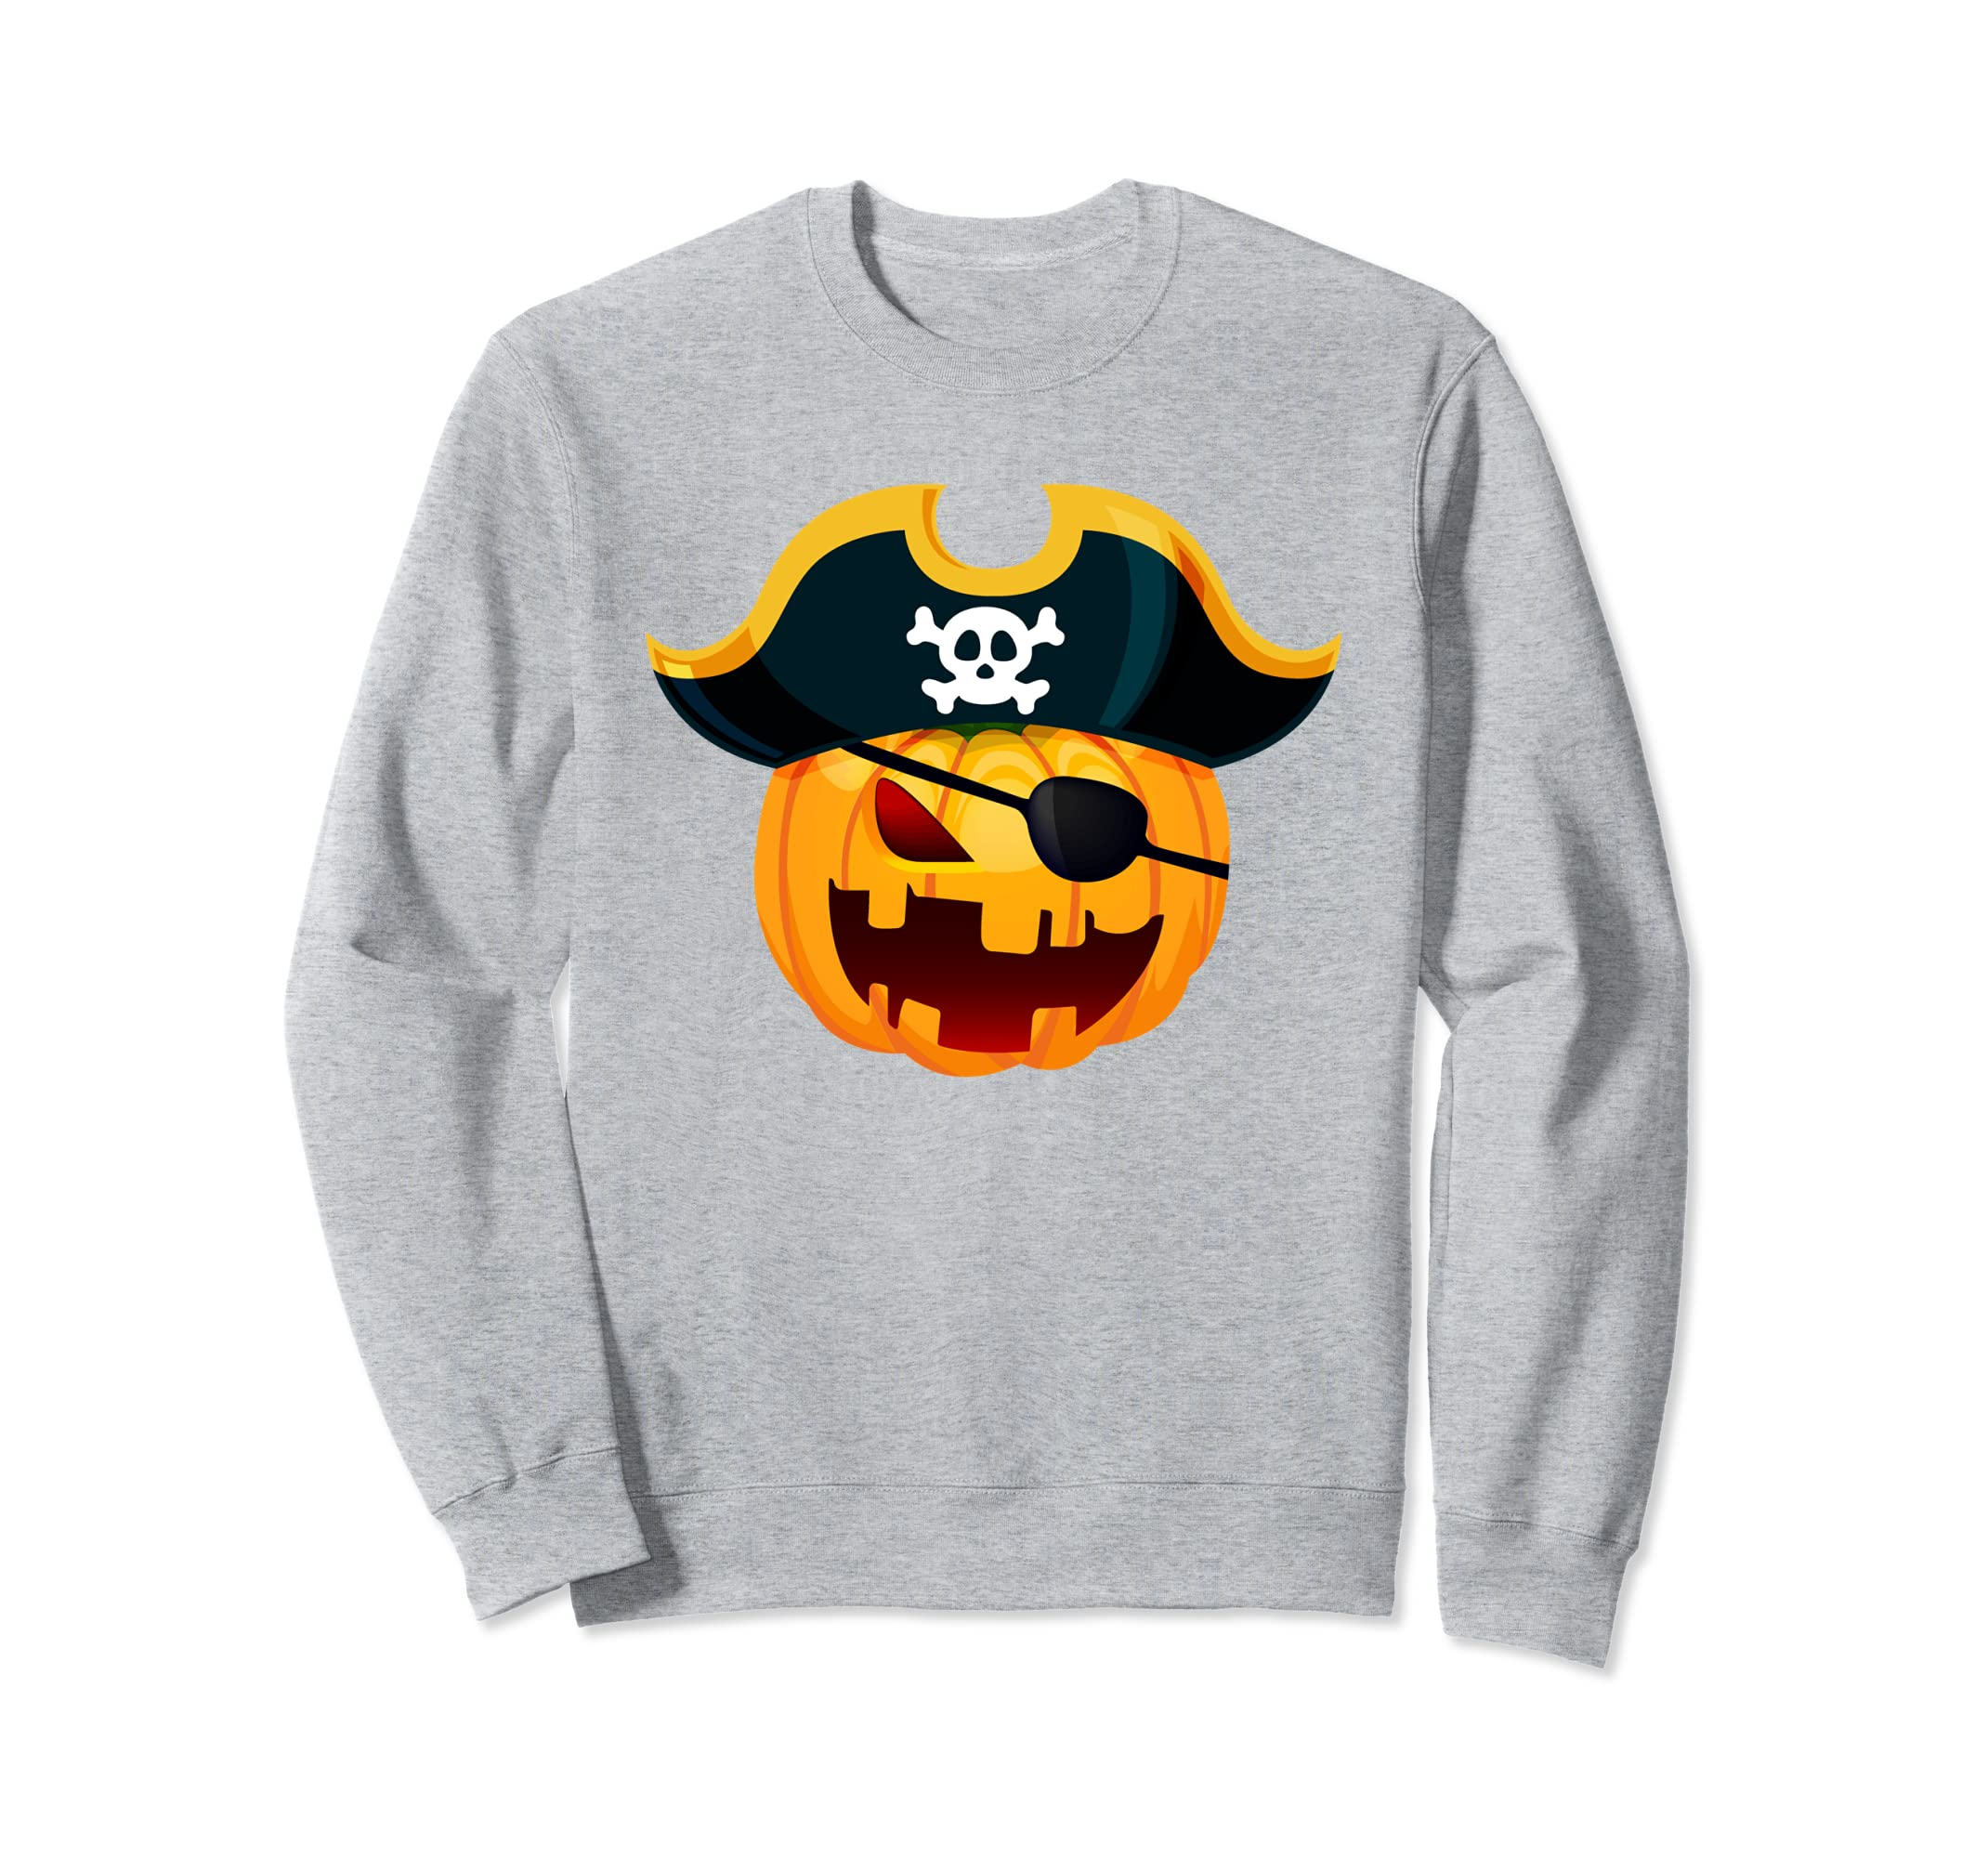 Awesome Graphic Funny Pirate Pumpkin Halloween Sweatshirt-Rose